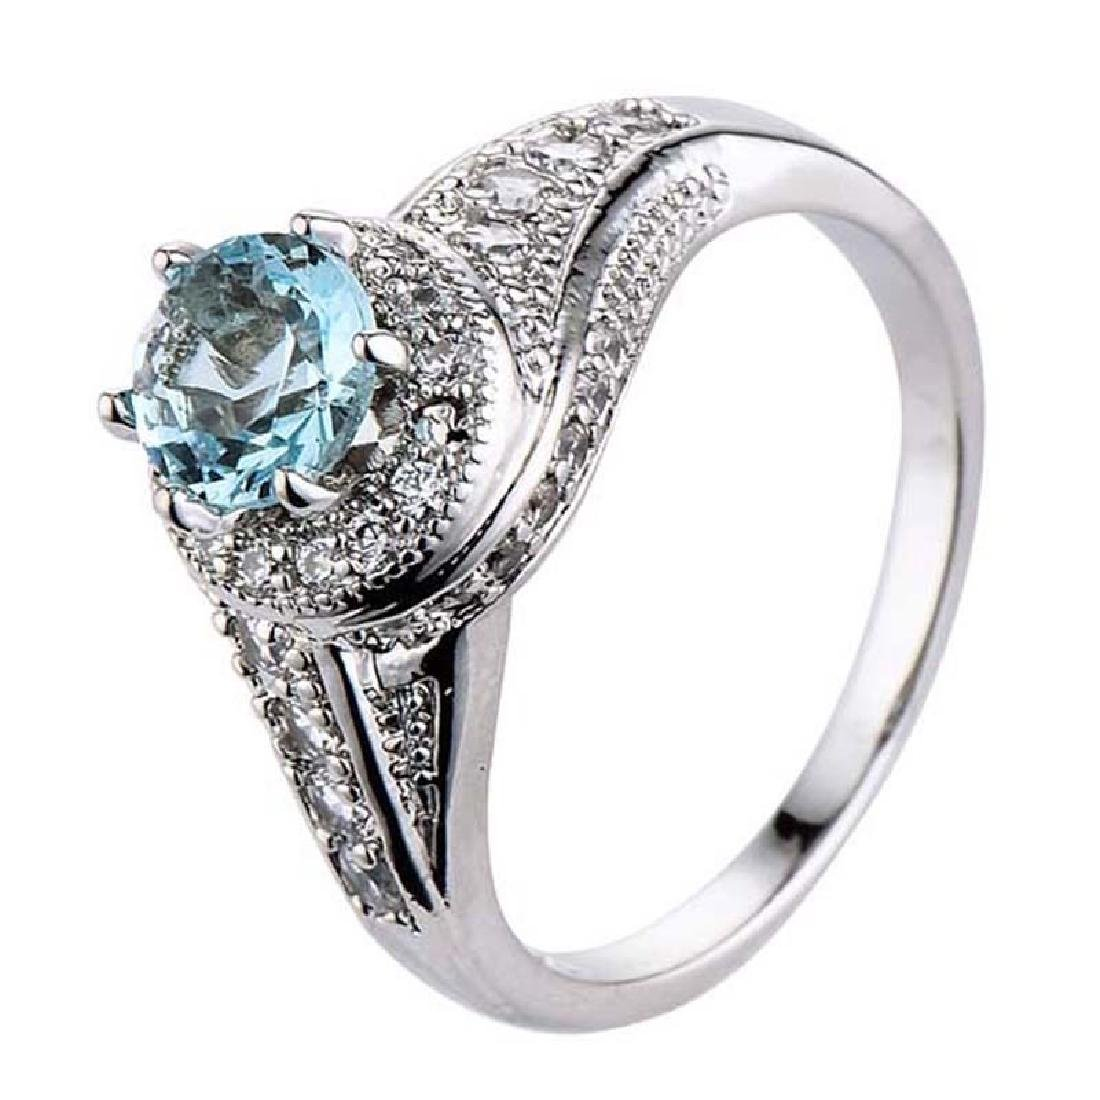 925 Silver Blue Topaz CZ Ring Wedding.Size:9 - 2